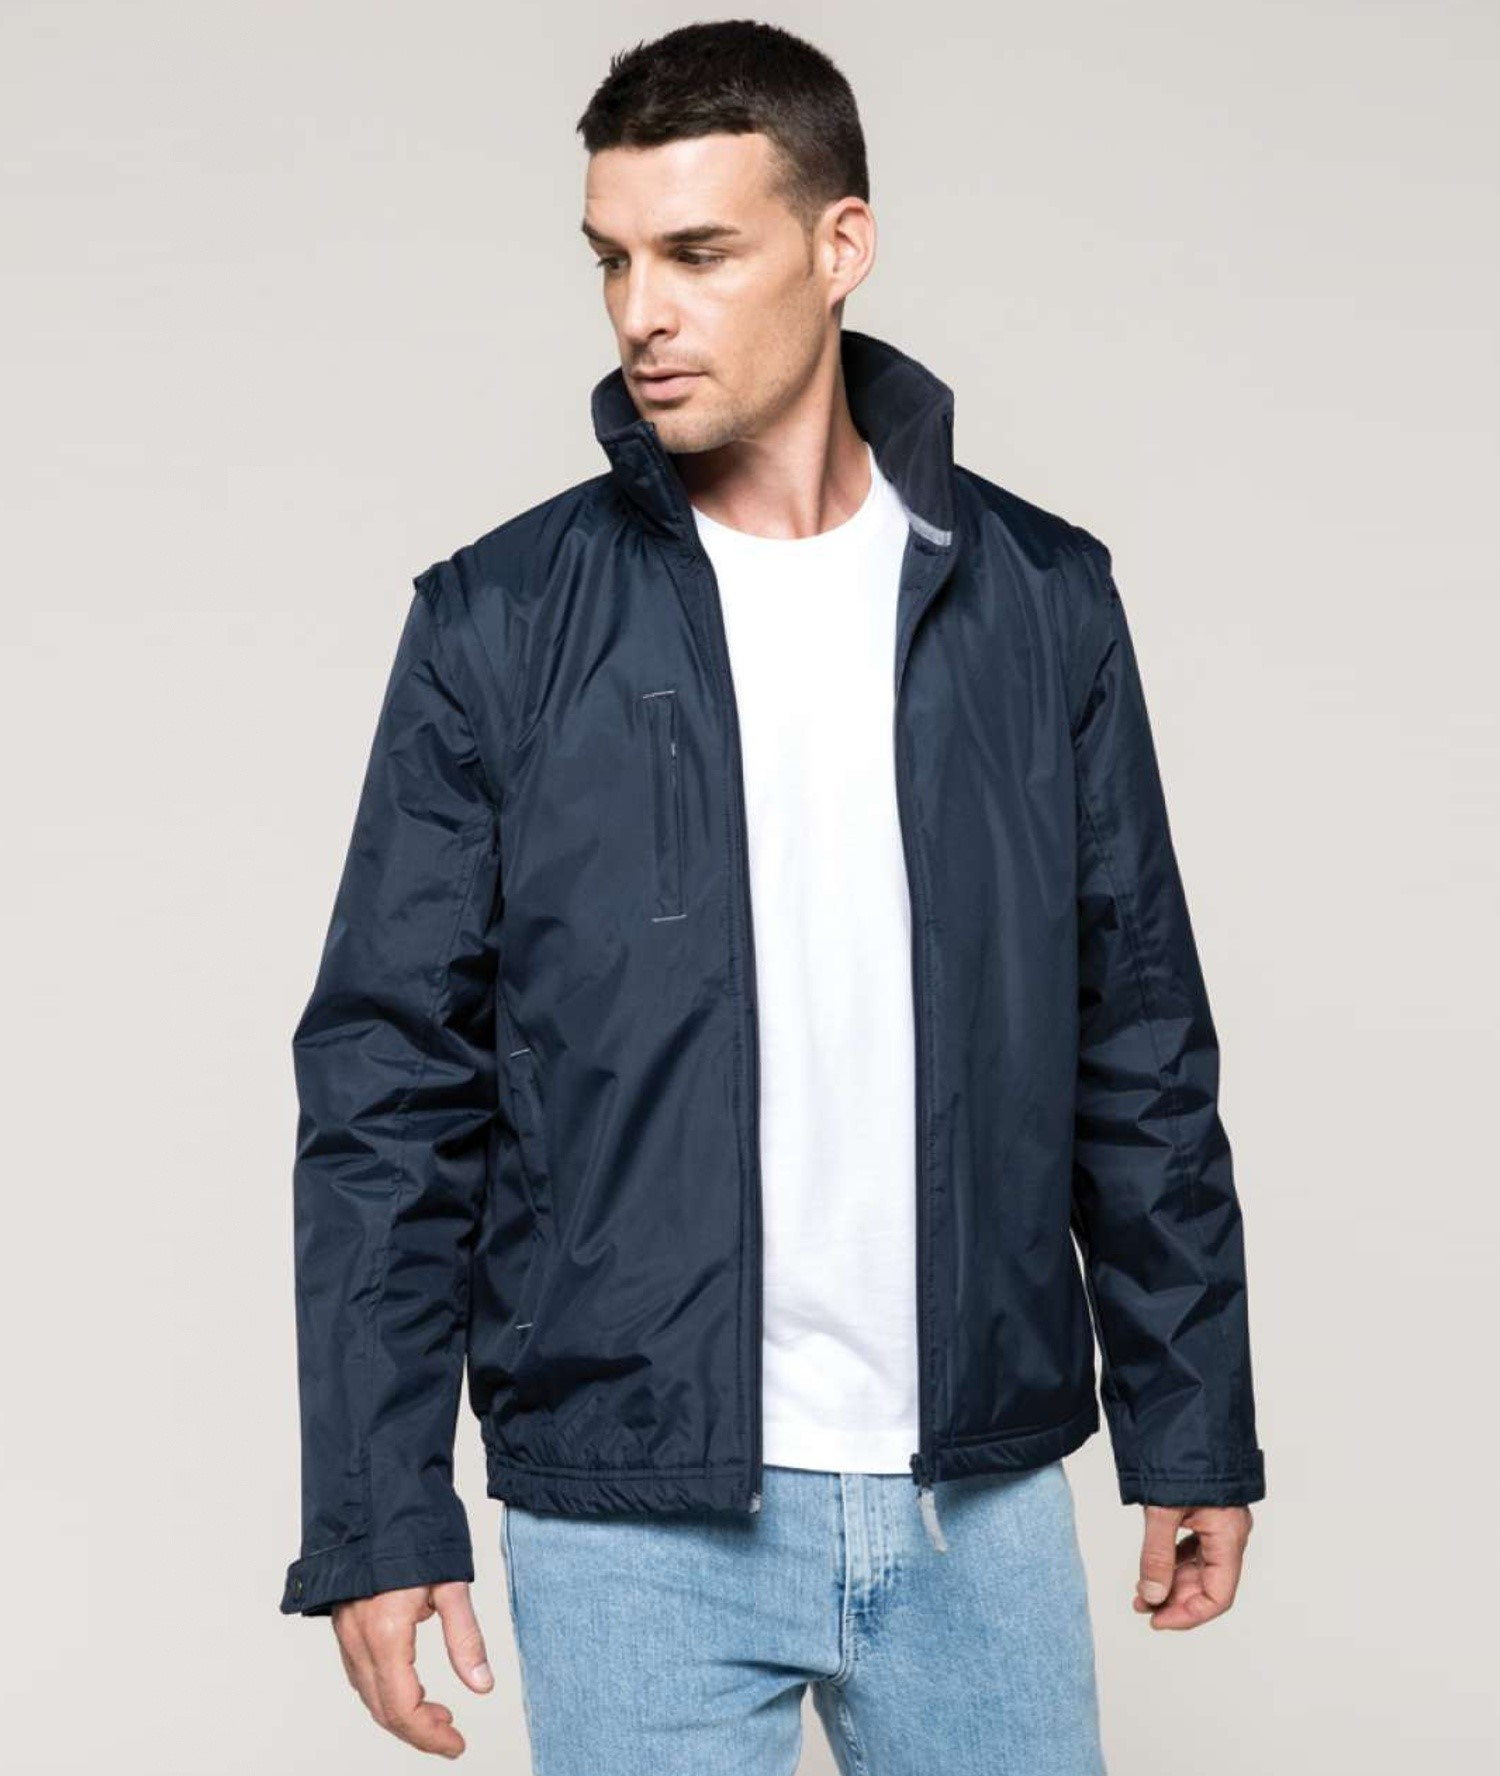 SCORE - DETACHABLE SLEEVE BLOUSON JACKET